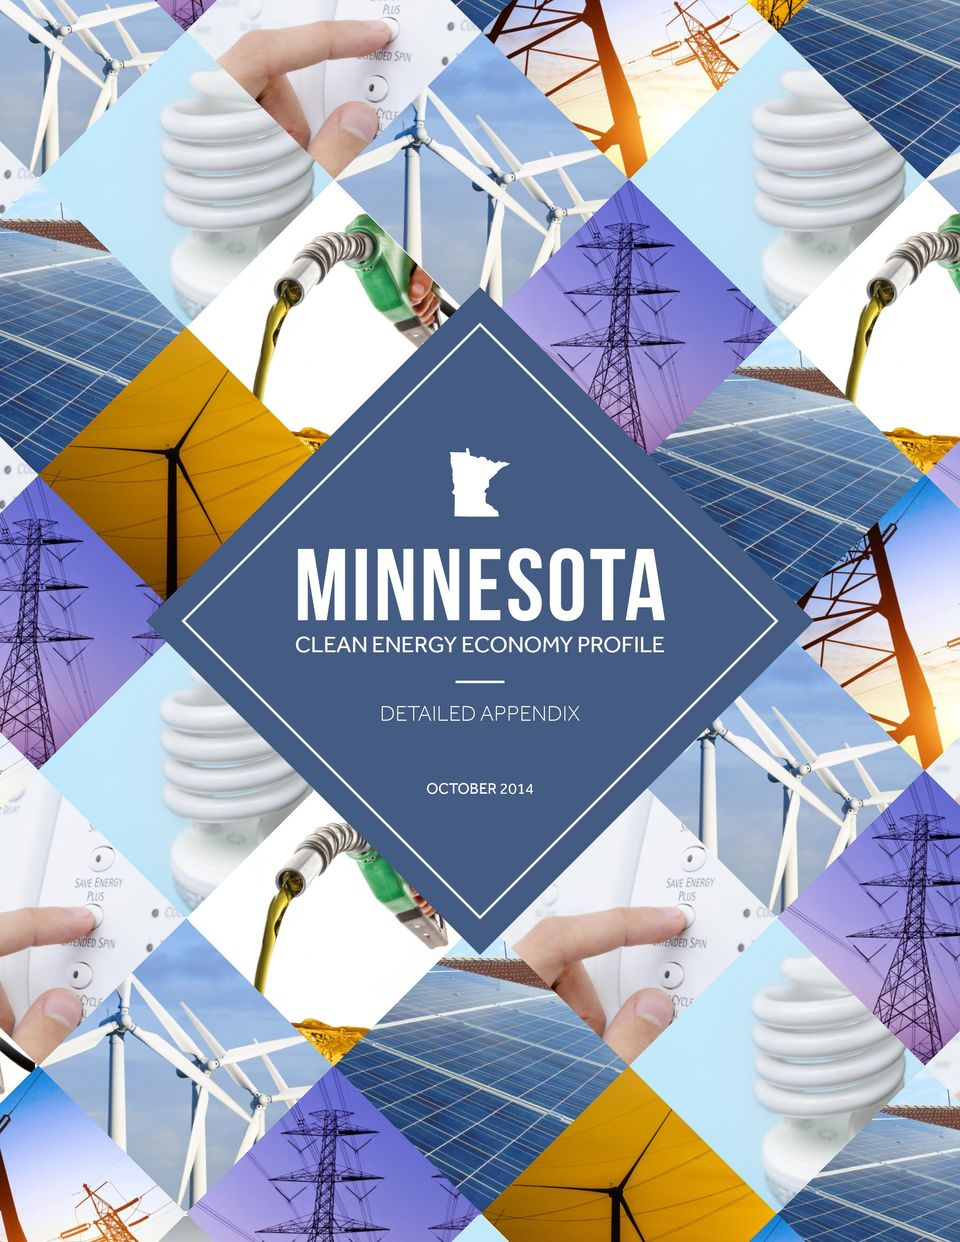 MINNESOTA CLEAN ENERGY ECONOMY